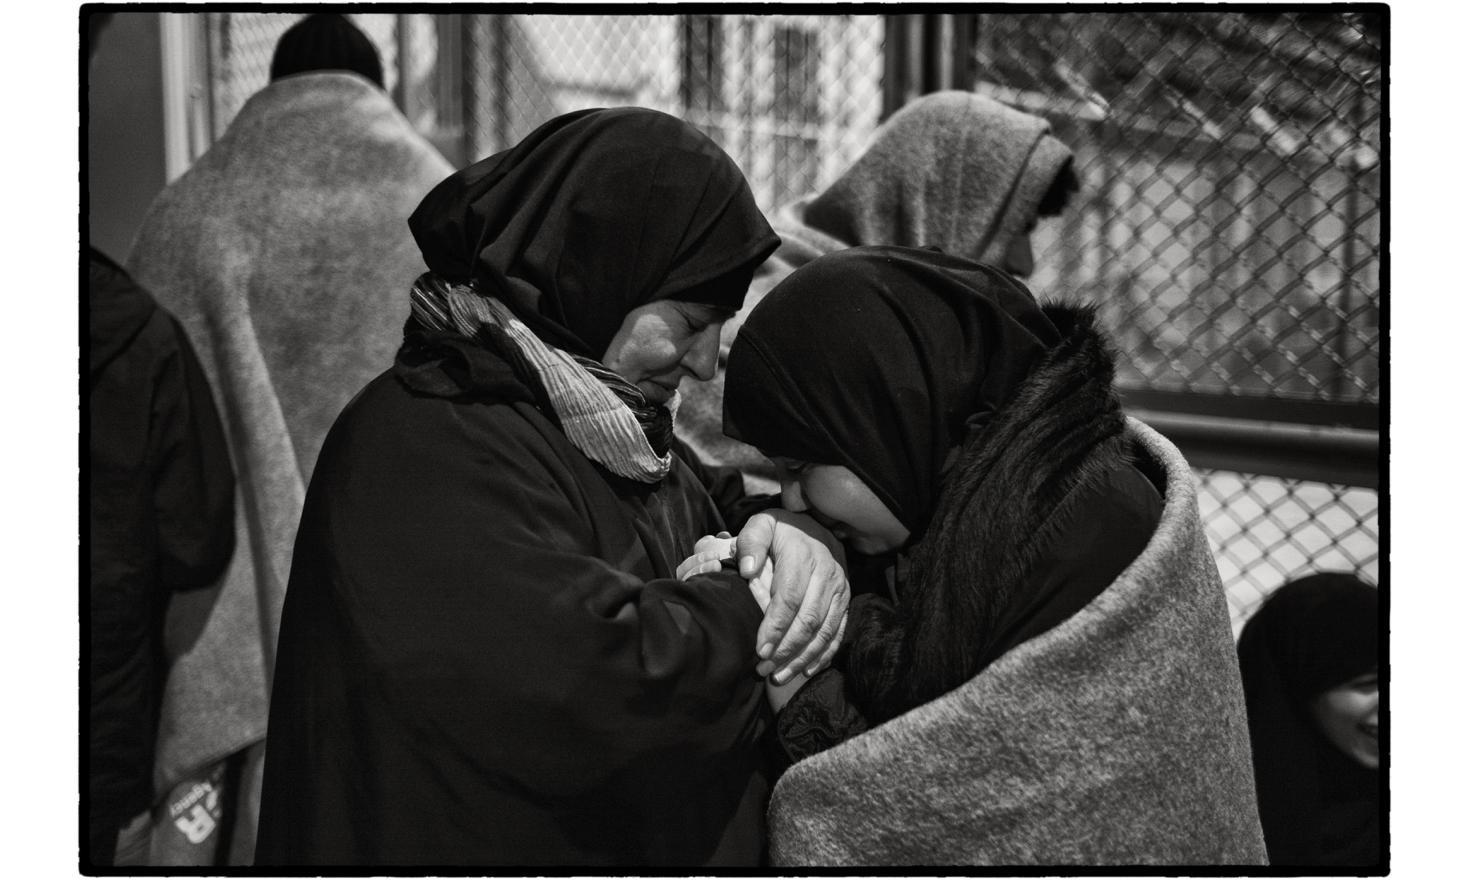 Moria 'Hotspot', Lesbos, Greece. The wait for the registration procedure is a long one. Families have to queue for hours.